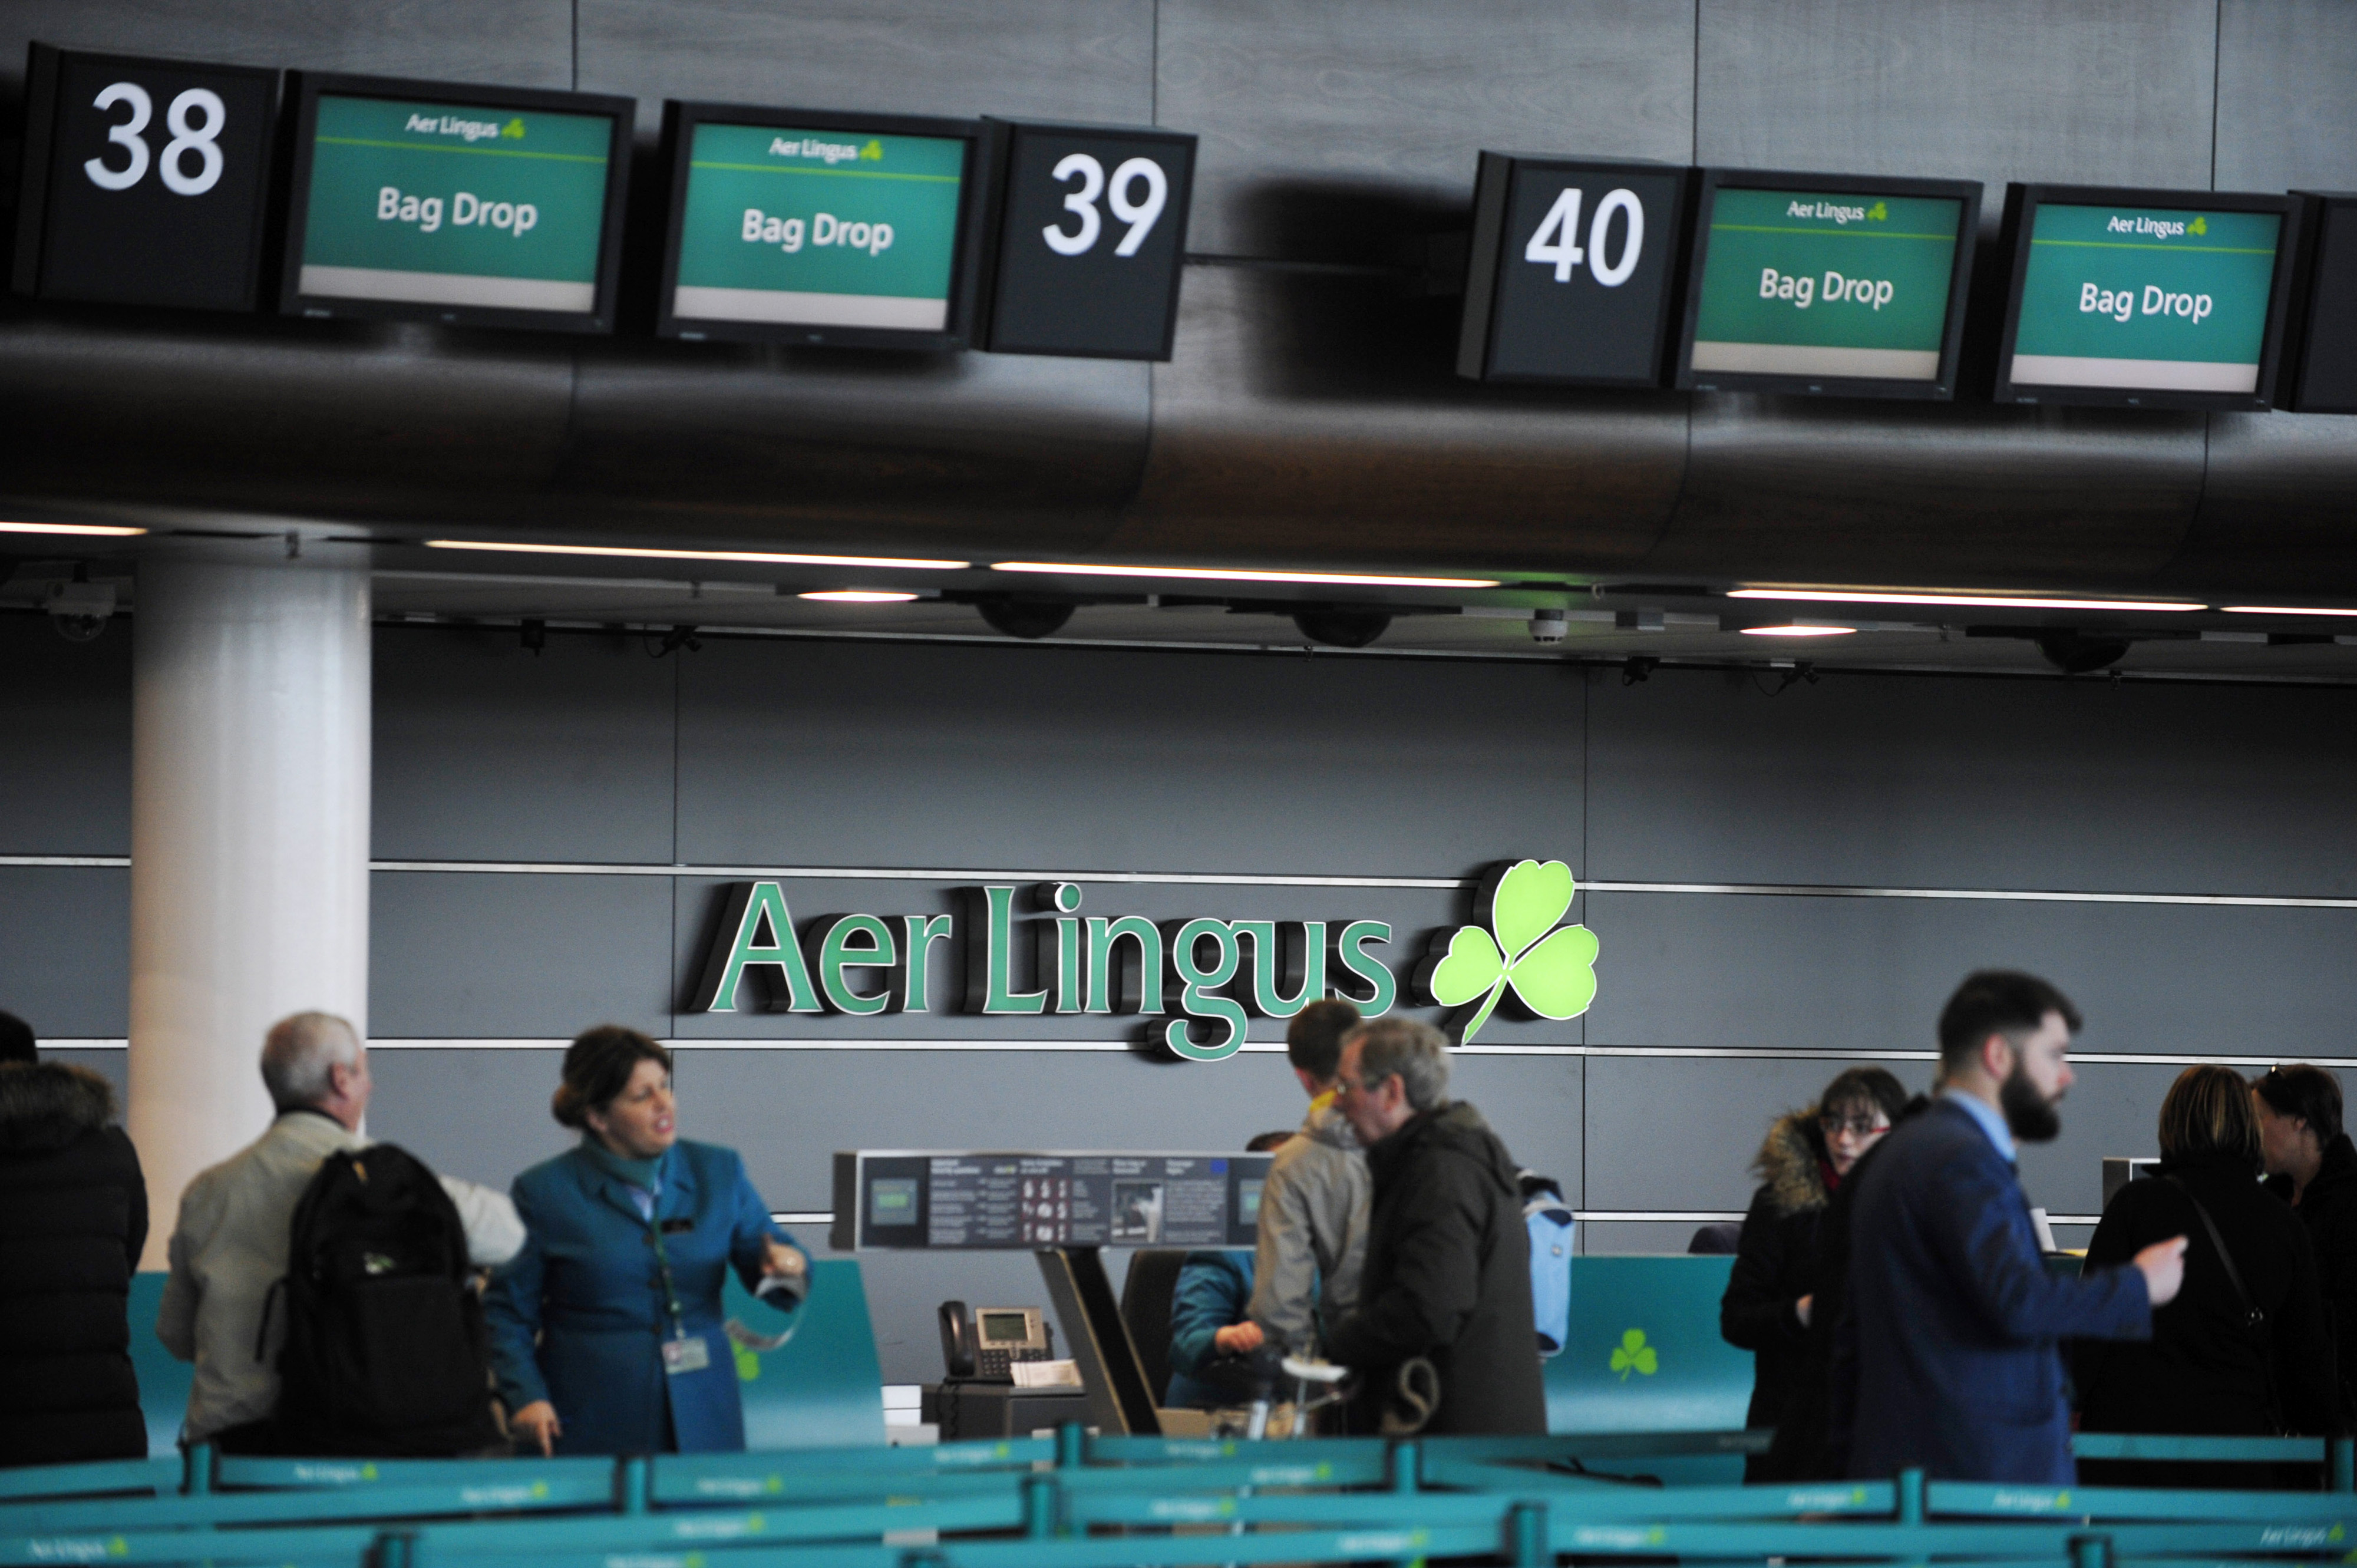 Aer Lingus Aircraft And Check-In Desks At Dublin Airport